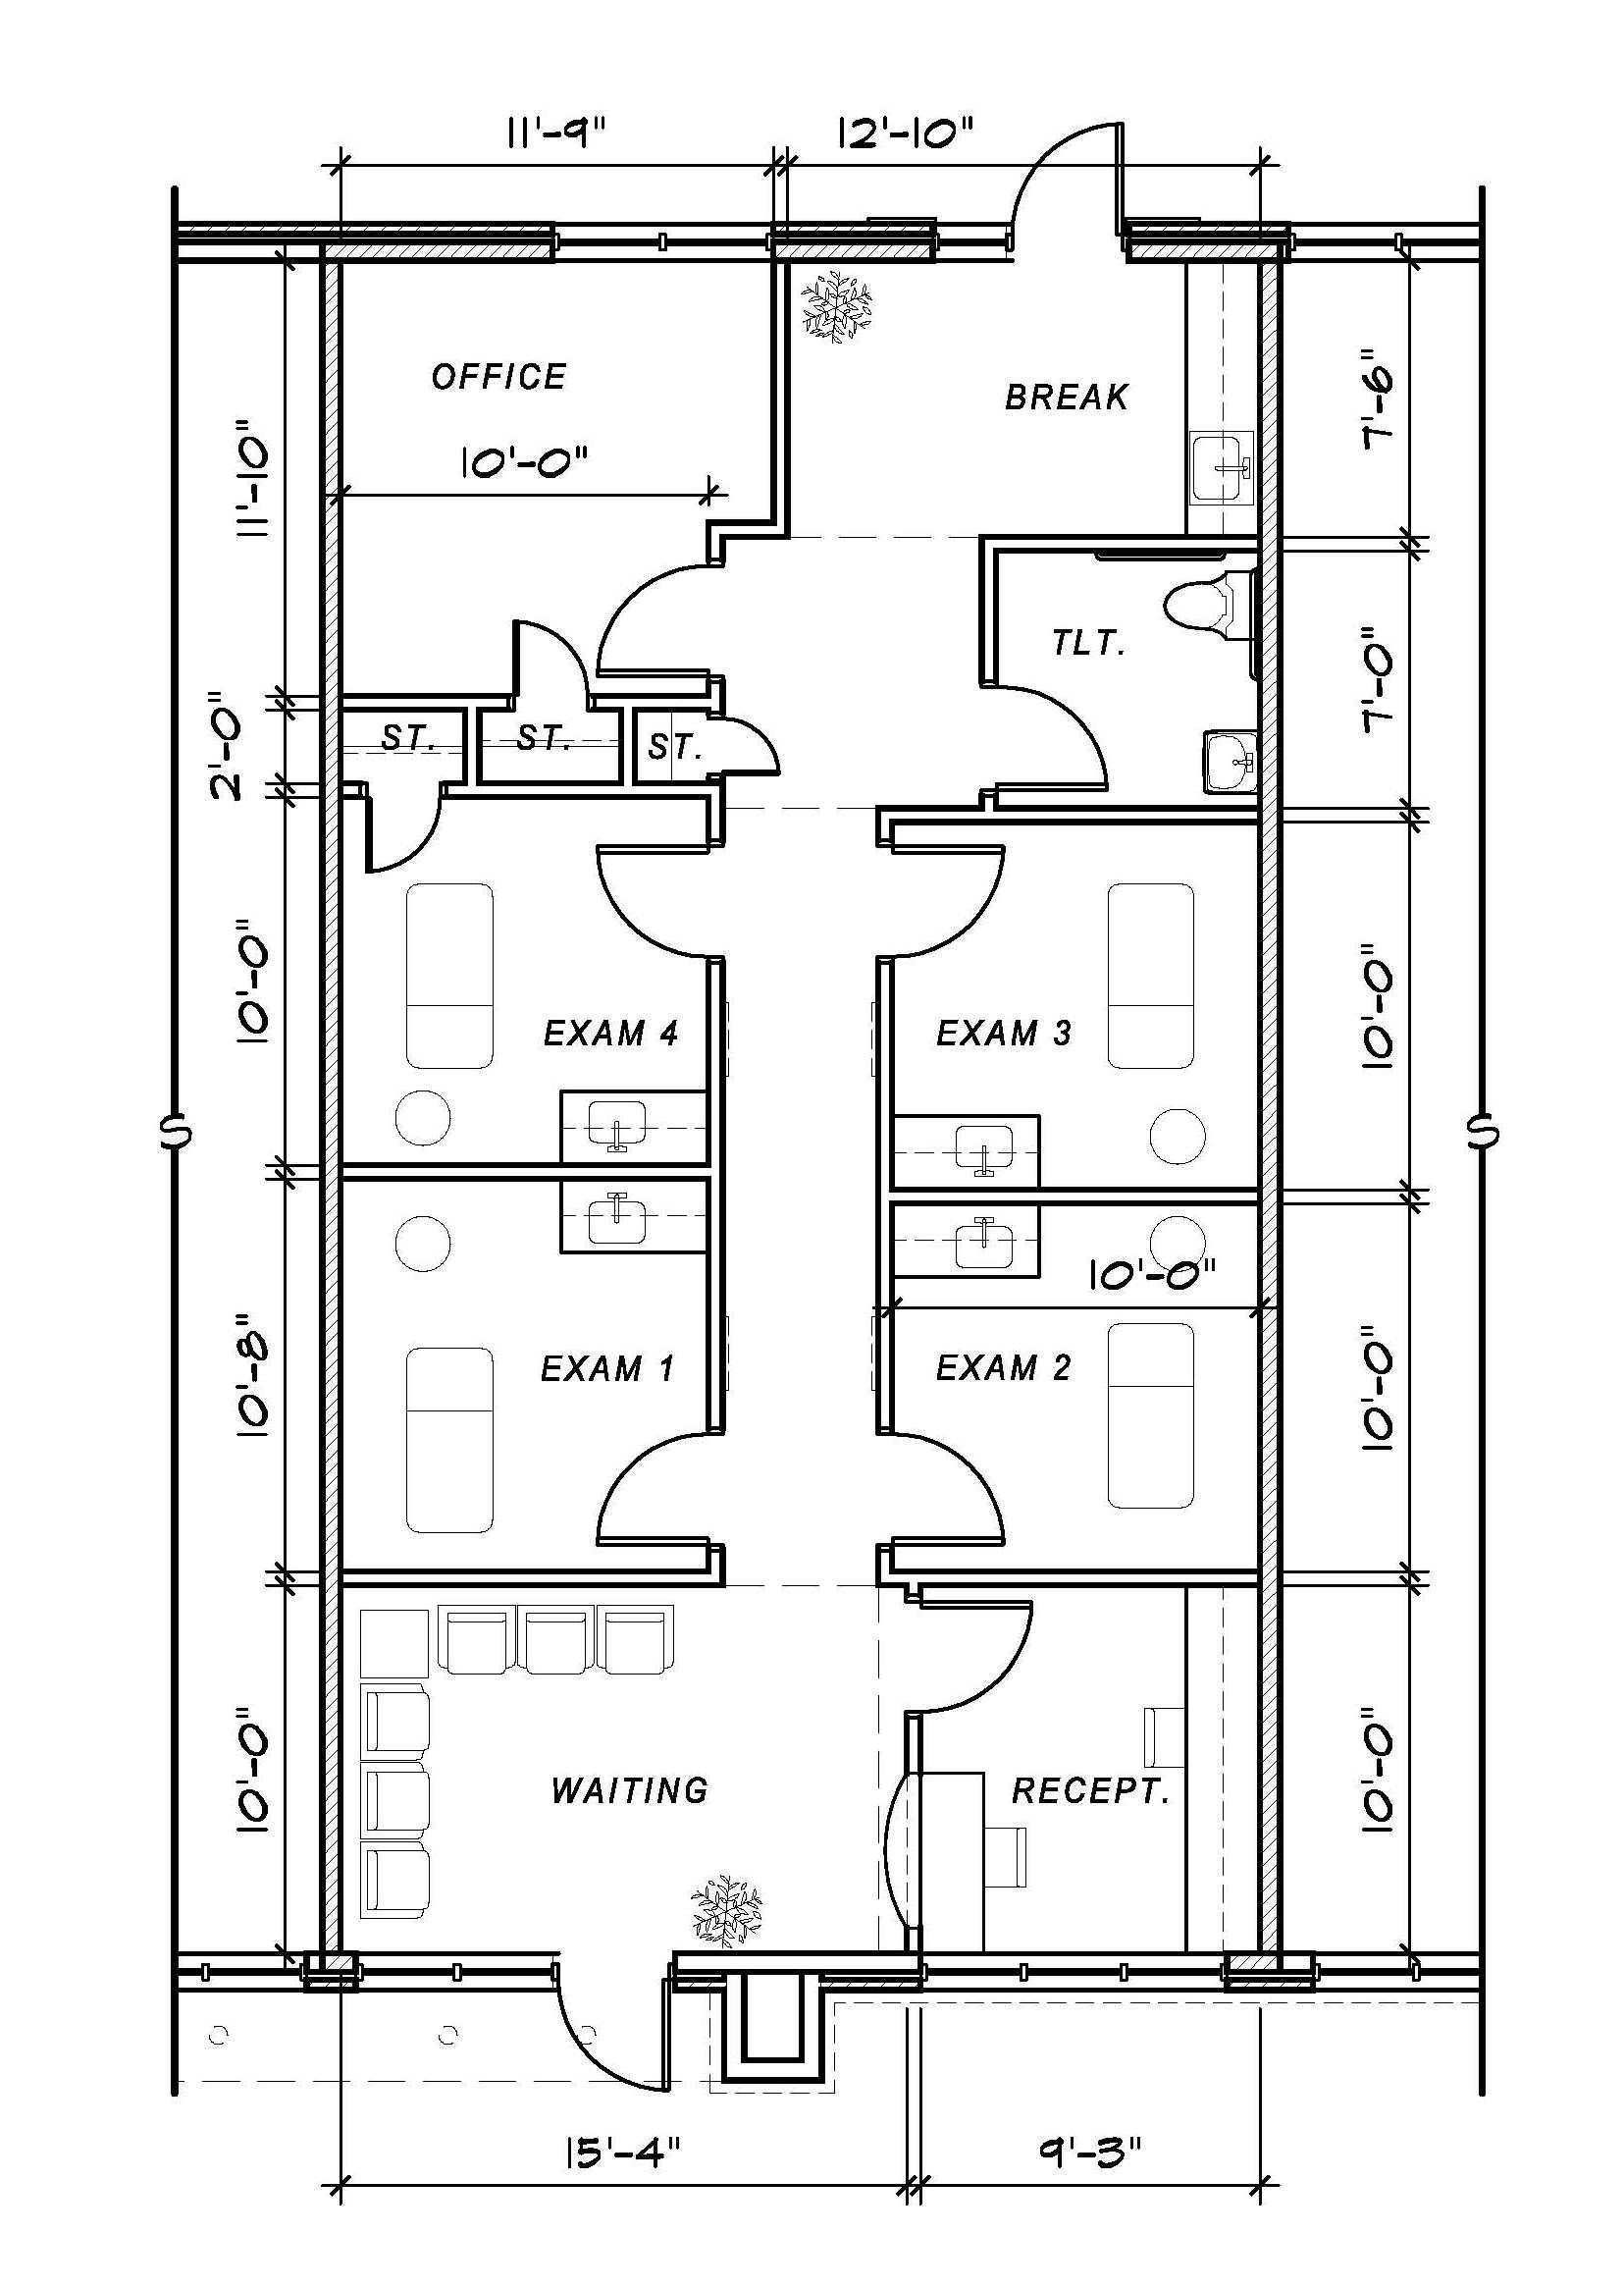 Medical office floor plan samples decorating inspiration for Office building plans and designs